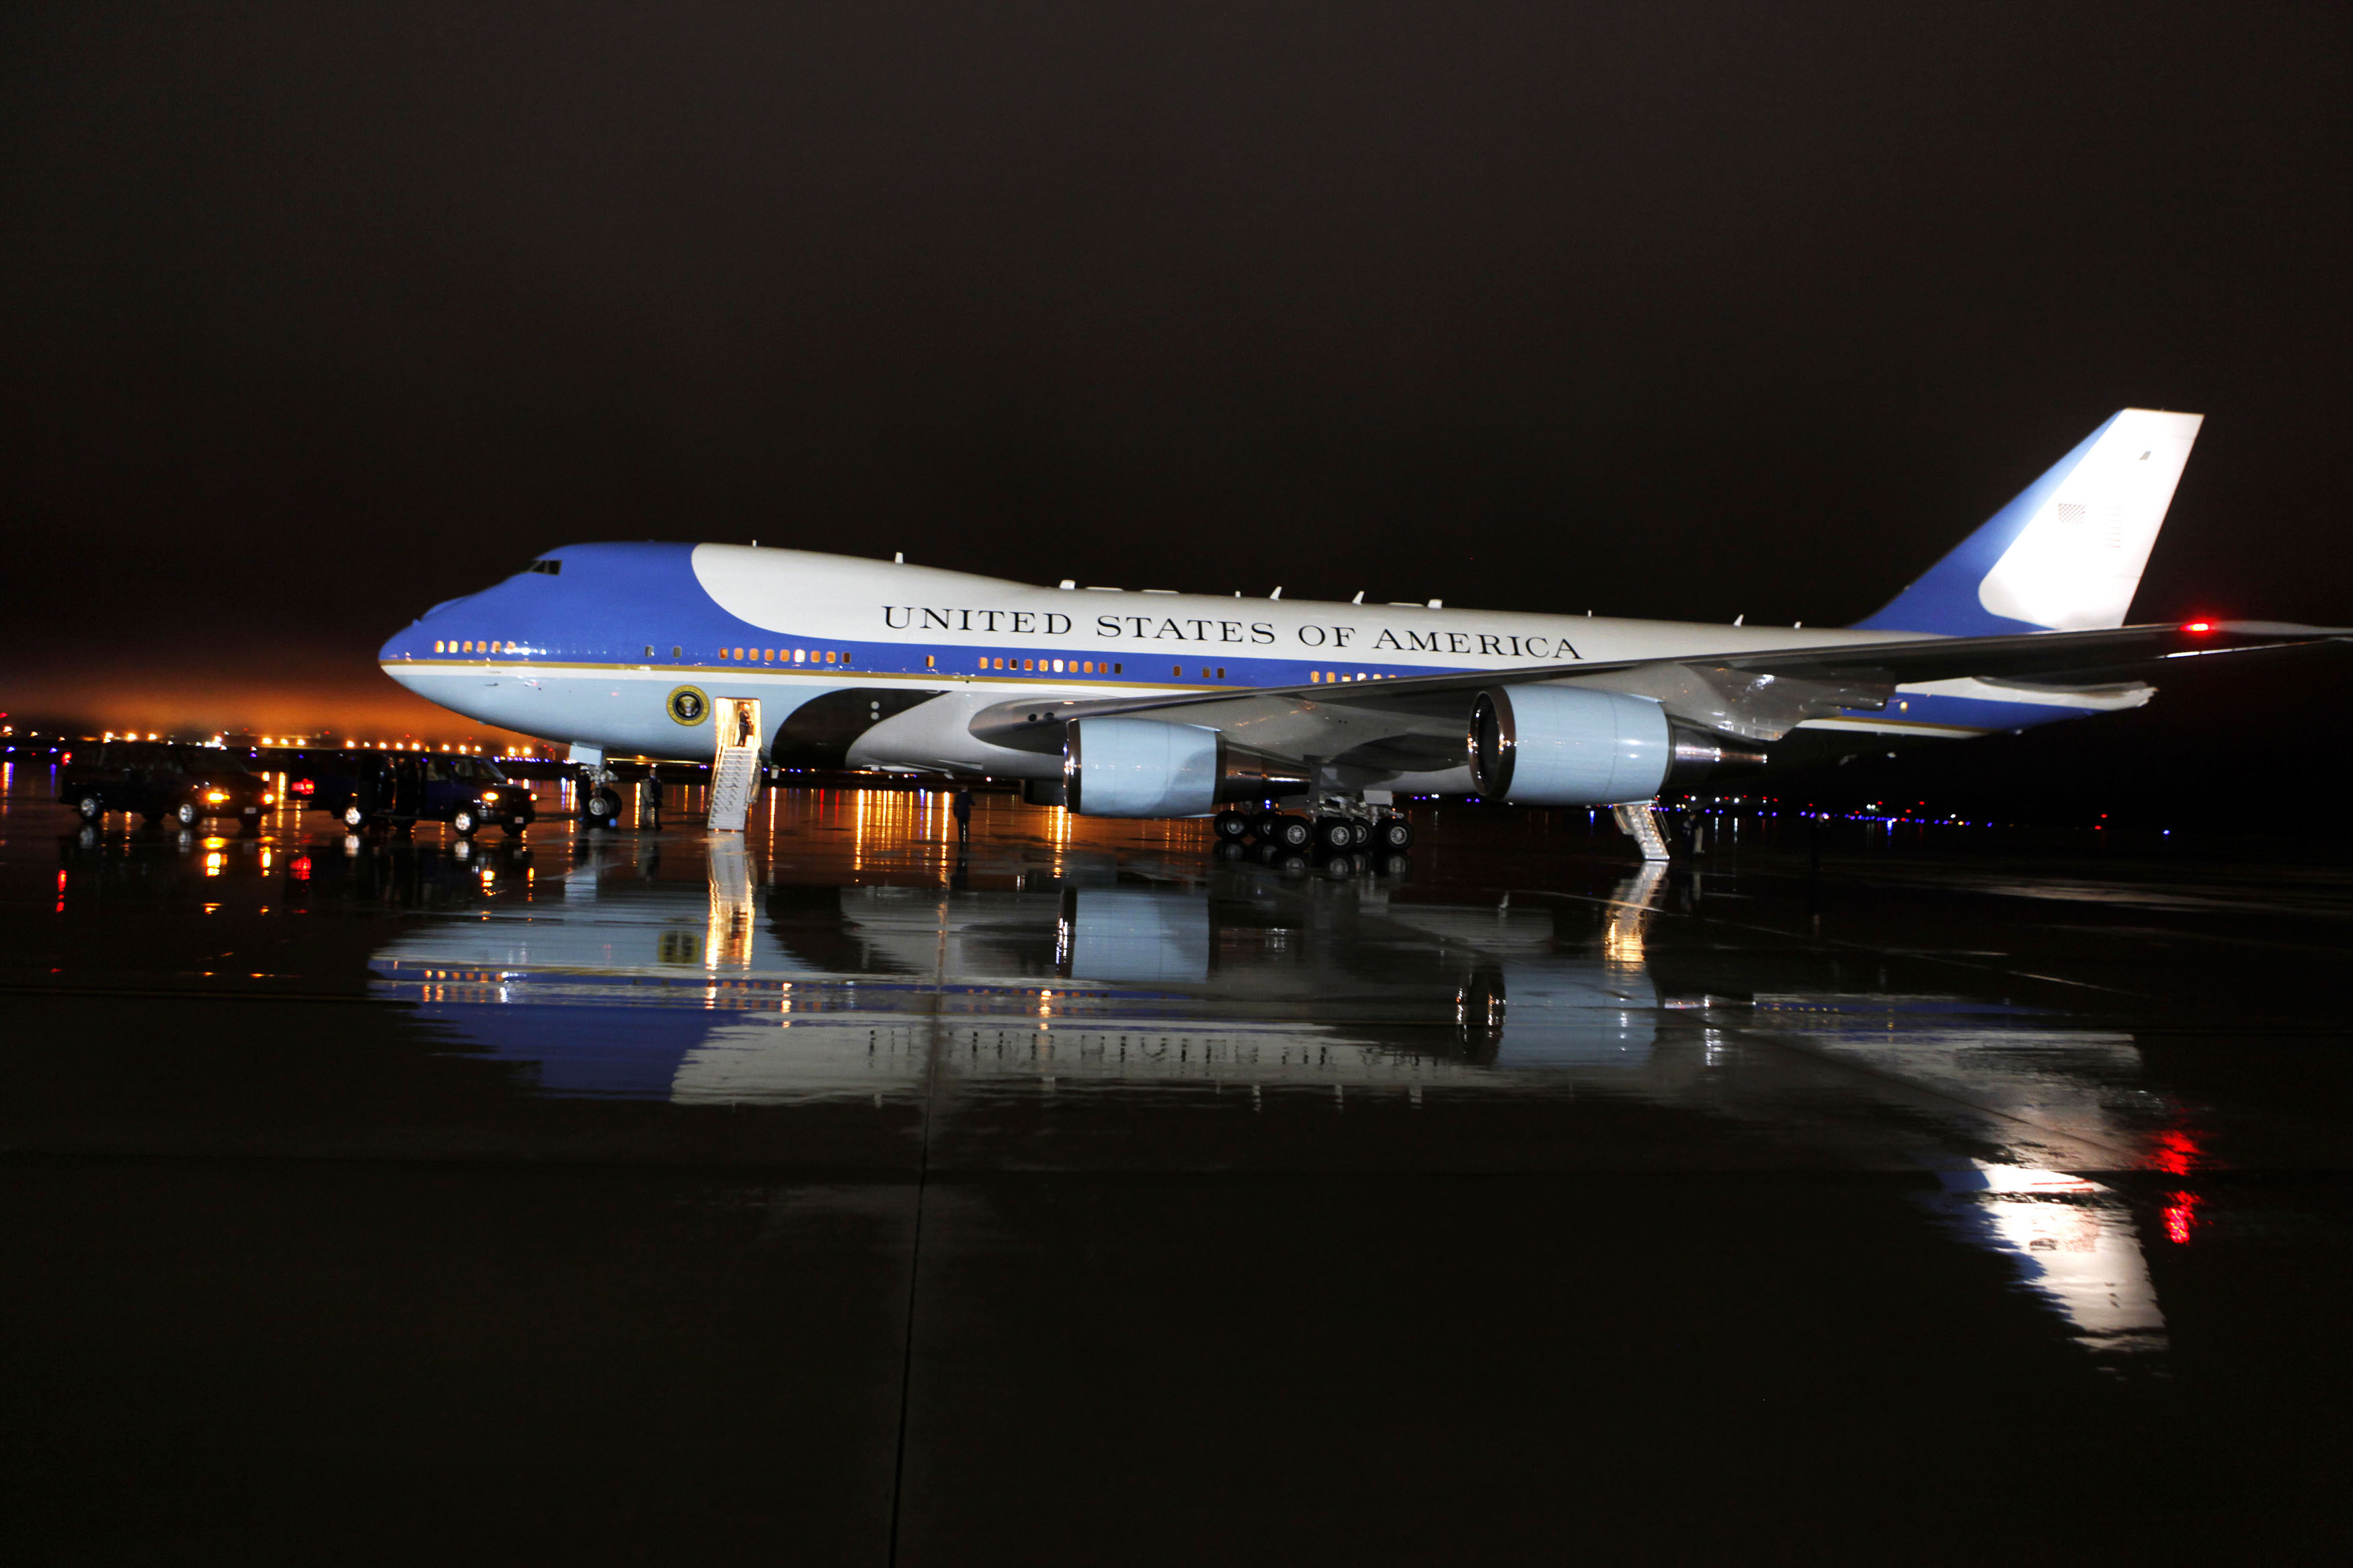 Air Force One sits on the rainy tarmac at Joint Base Andrews after a rainstorm blew through the Washington region after midnight